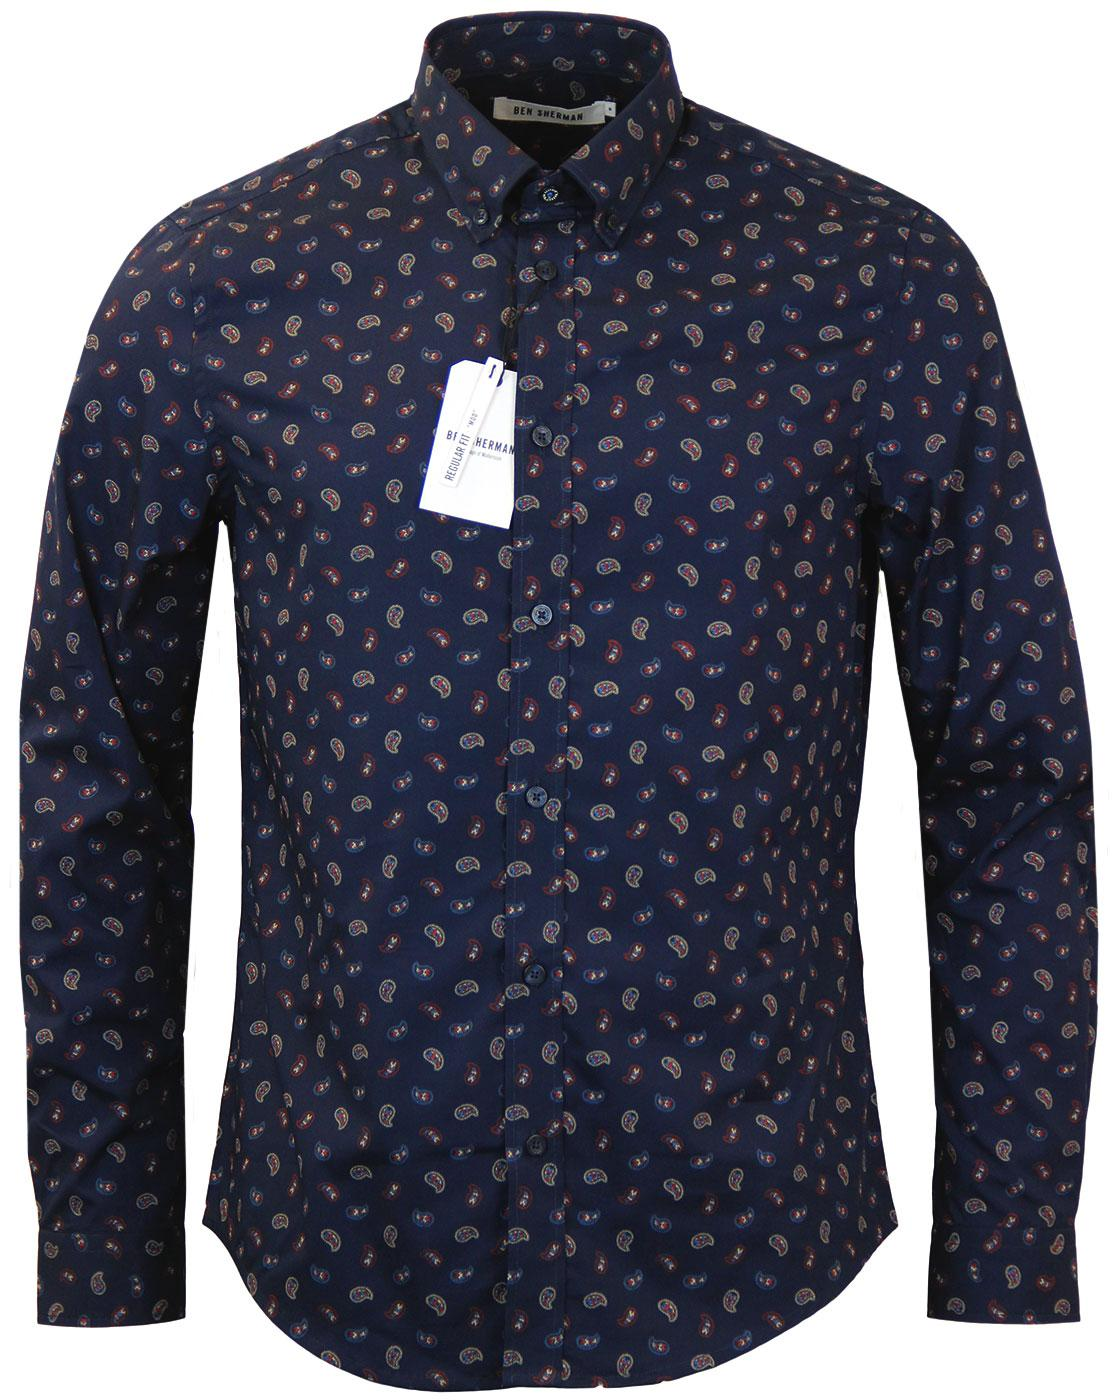 BEN SHERMAN Retro Mod Scattered Paisley Shirt (N)